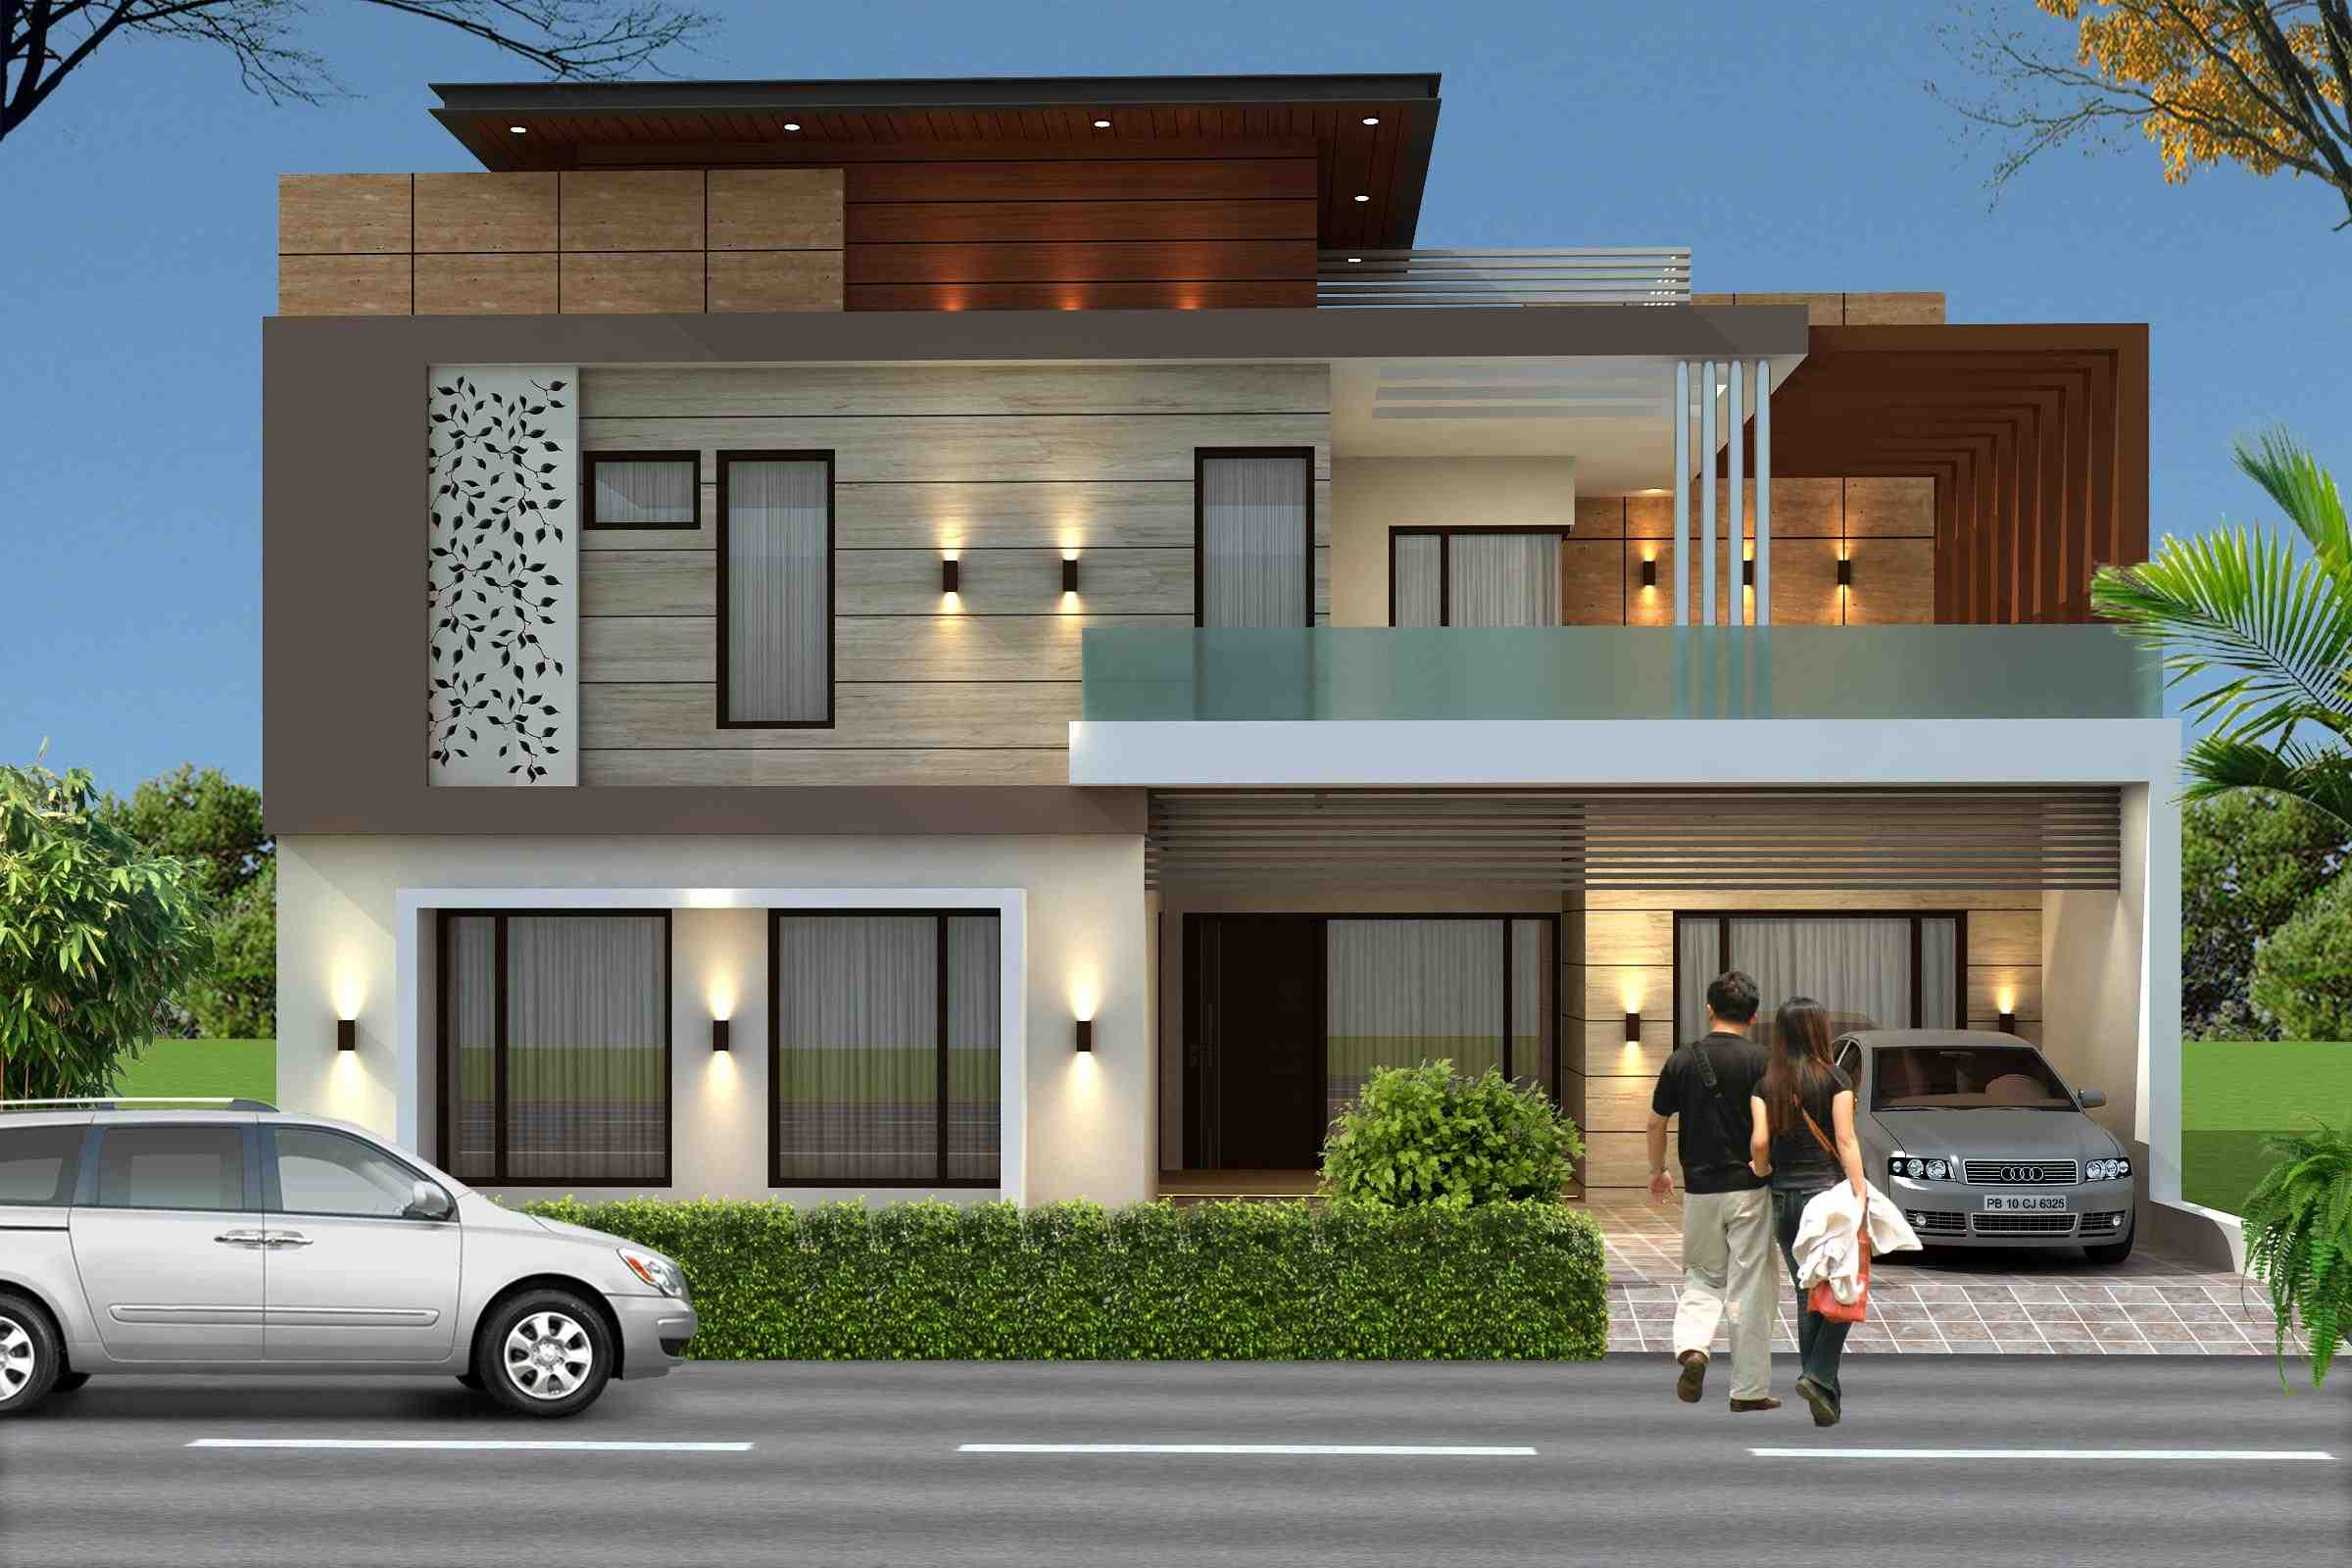 Front Elevation Design In Ludhiana : Projects jagmohan singh associates architects in